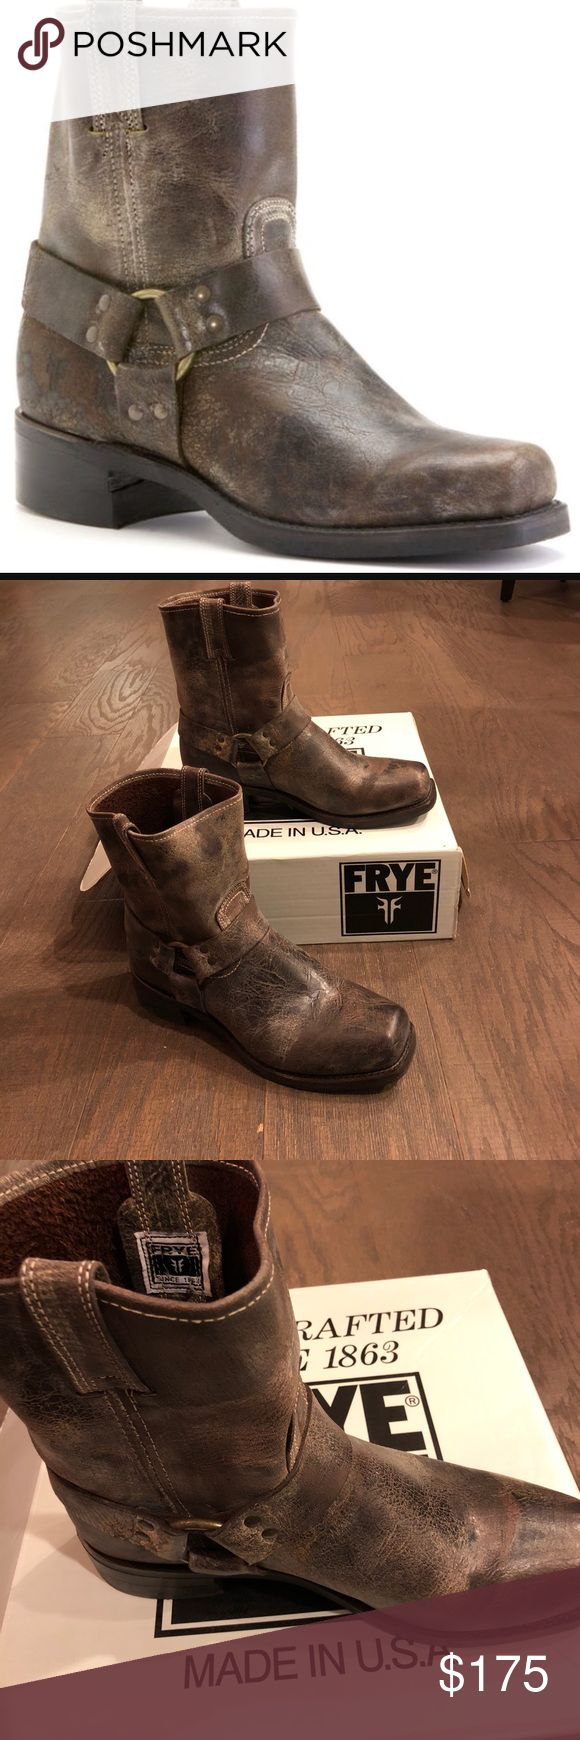 NWT!! Never worn Frye Harness boots size 10.5 NWT!! Never worn Frye Harness boots size 10.5 in chocolate with original box Frye Shoes Boots